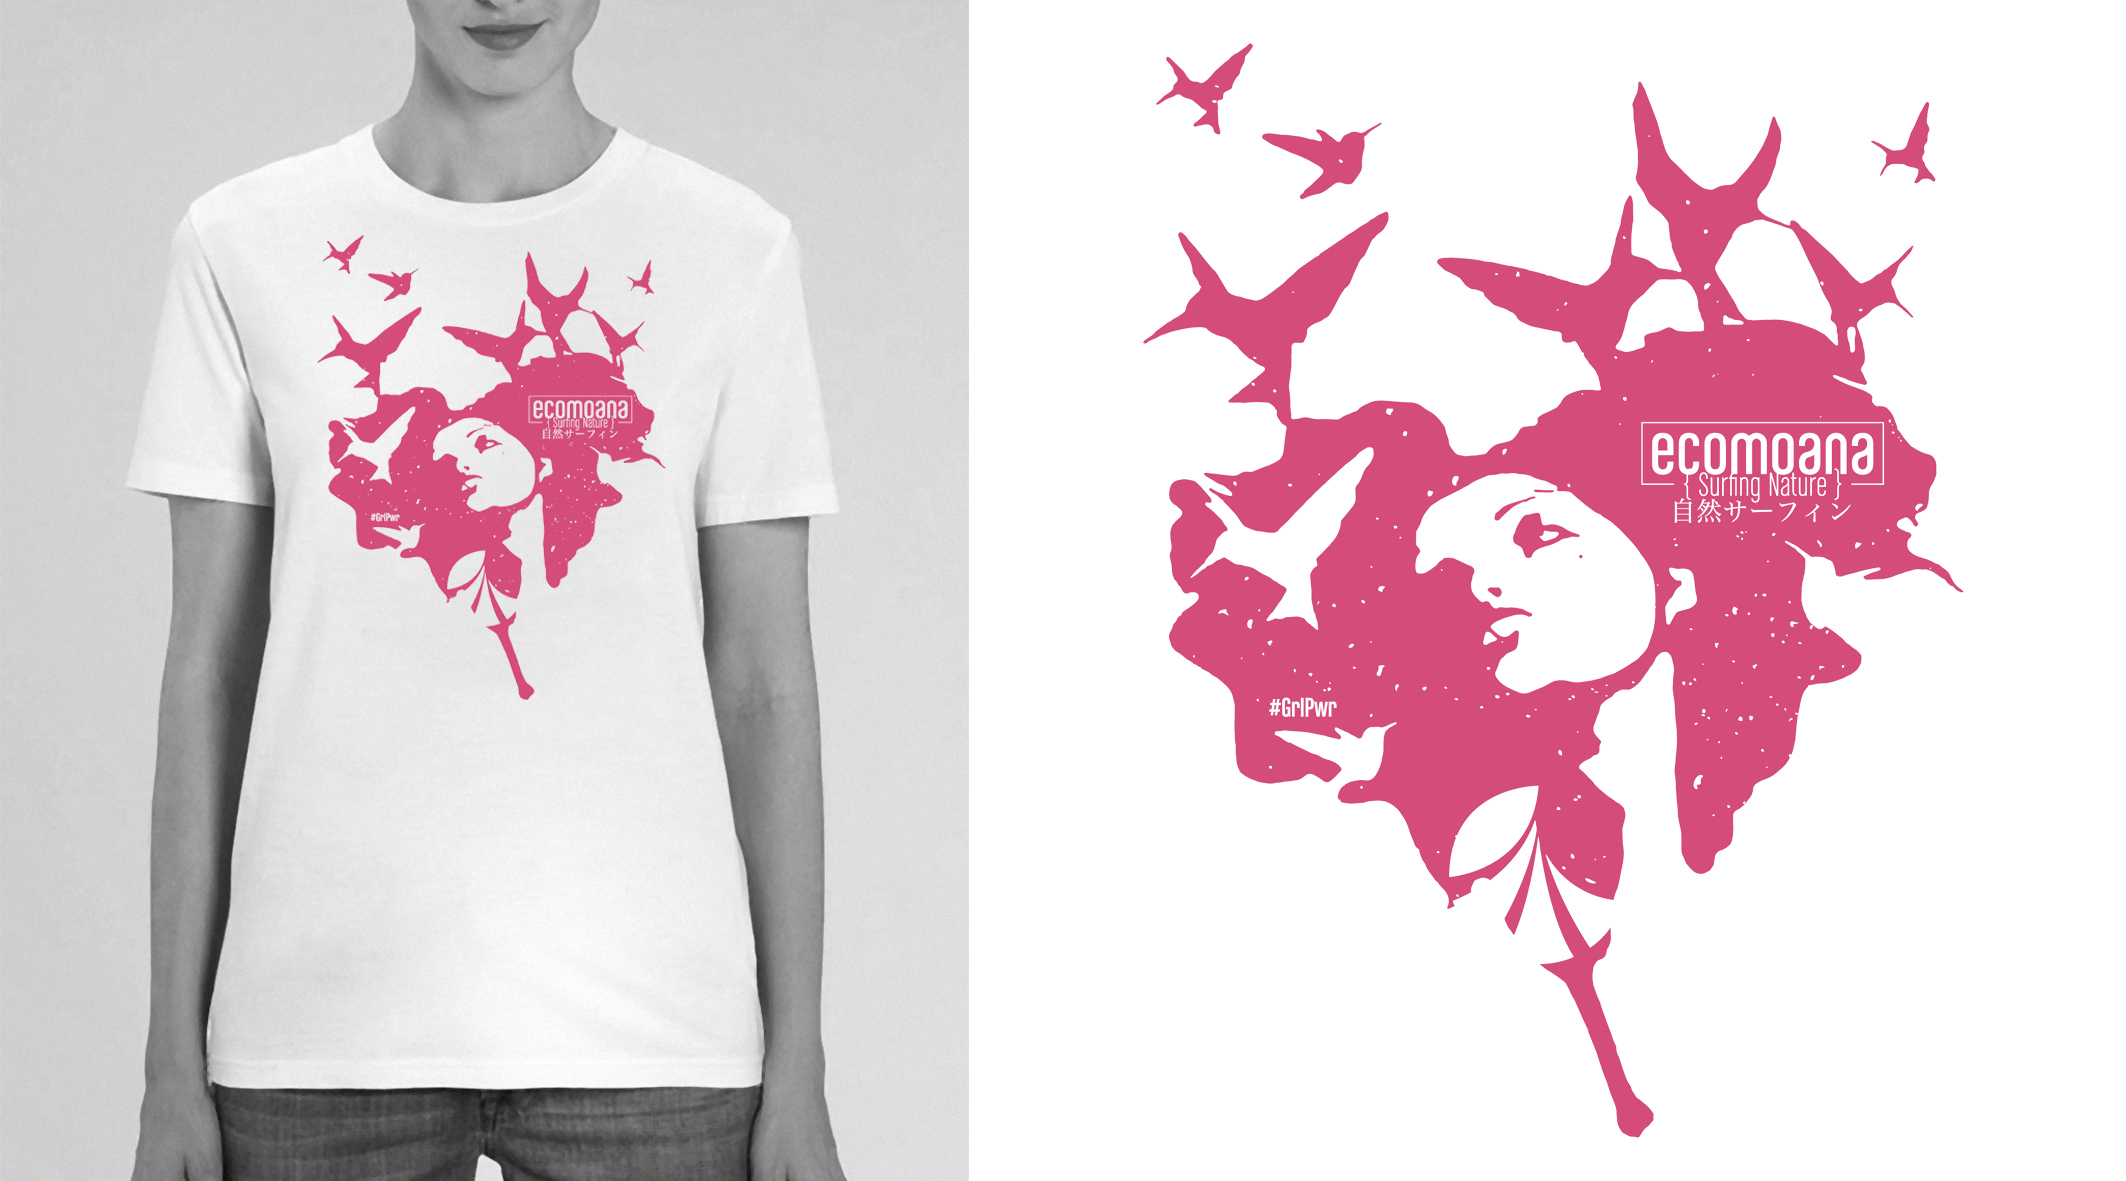 LADY Tees Collection - #MadeInFrance#Organic #Bio#GrlPwr